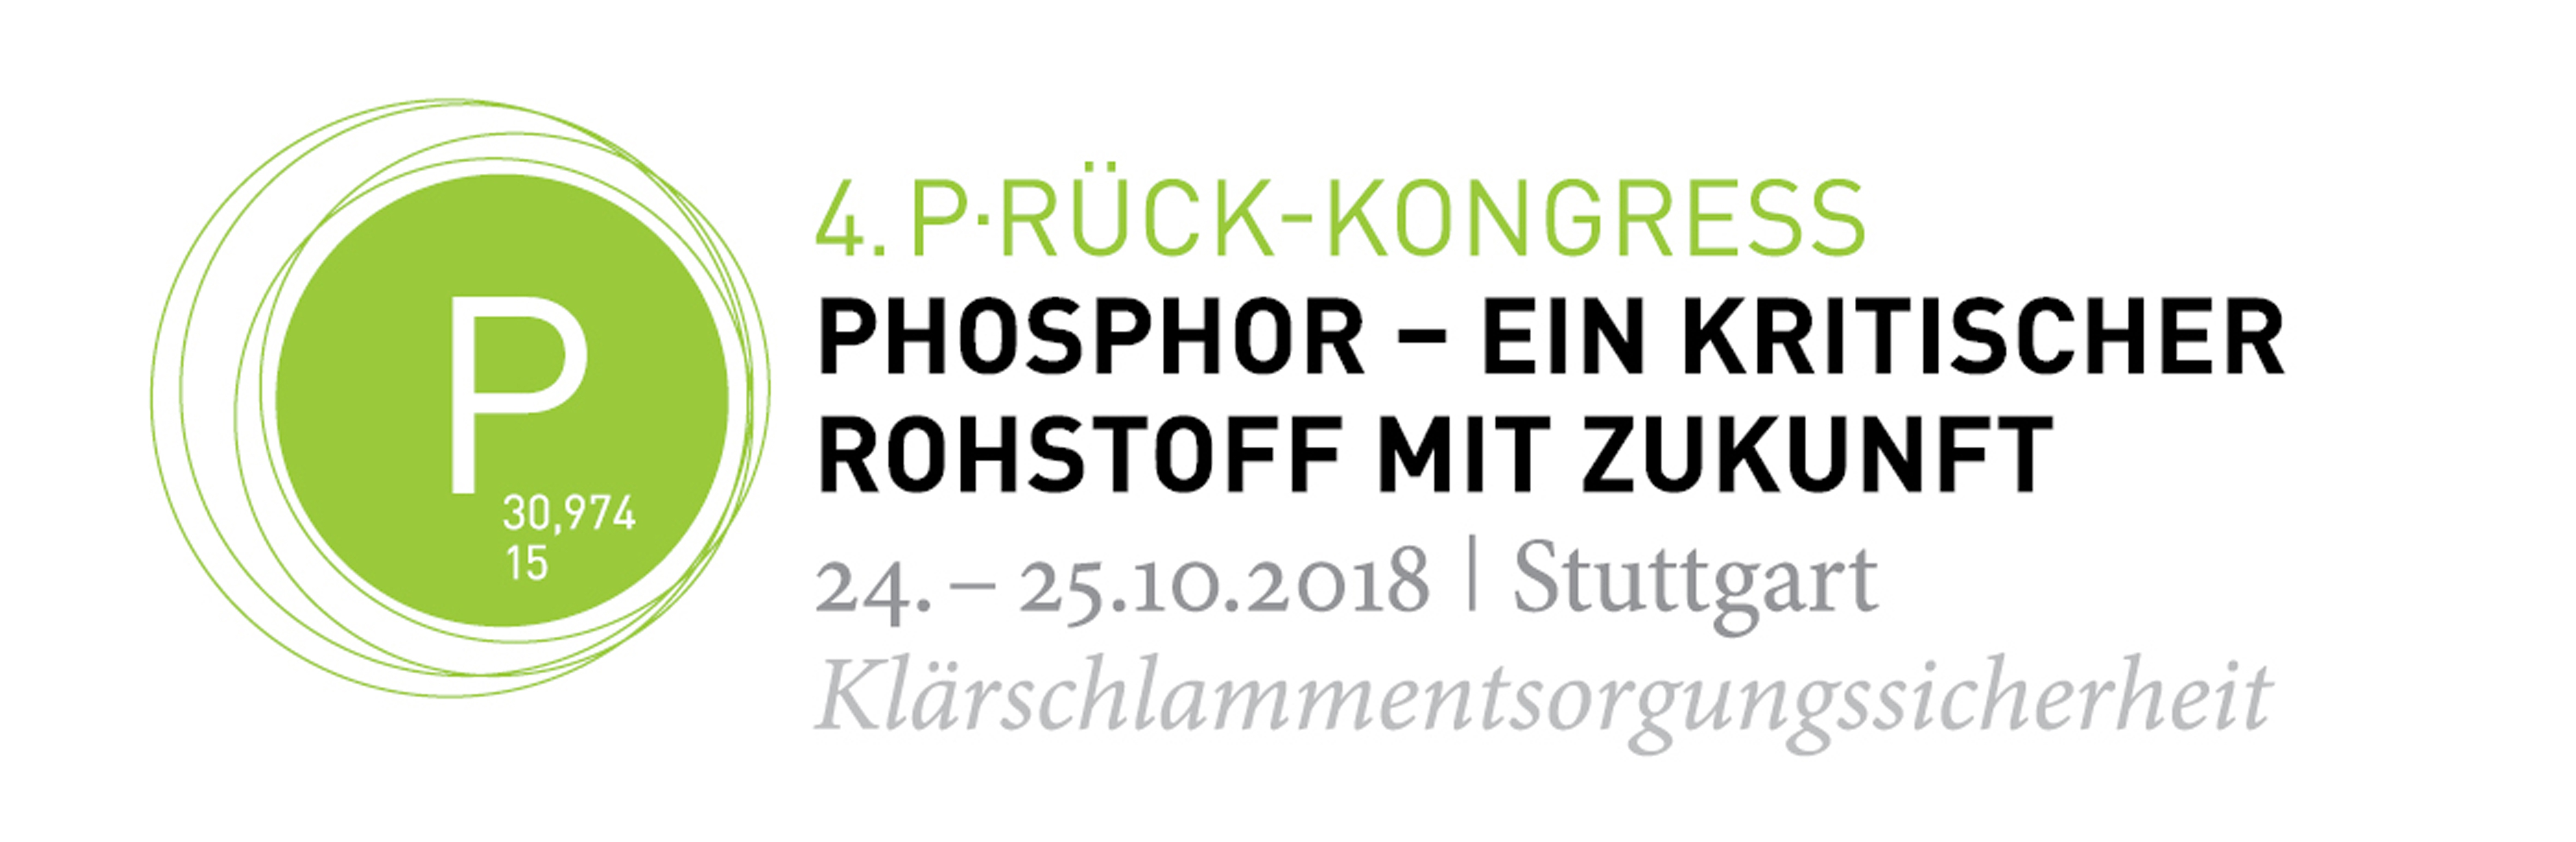 "4th Congress on Phosphorous Recovery: ""Phosphorous – a critical raw material with future"" from the 24th to 25th of October in Stuttgart, Germany"